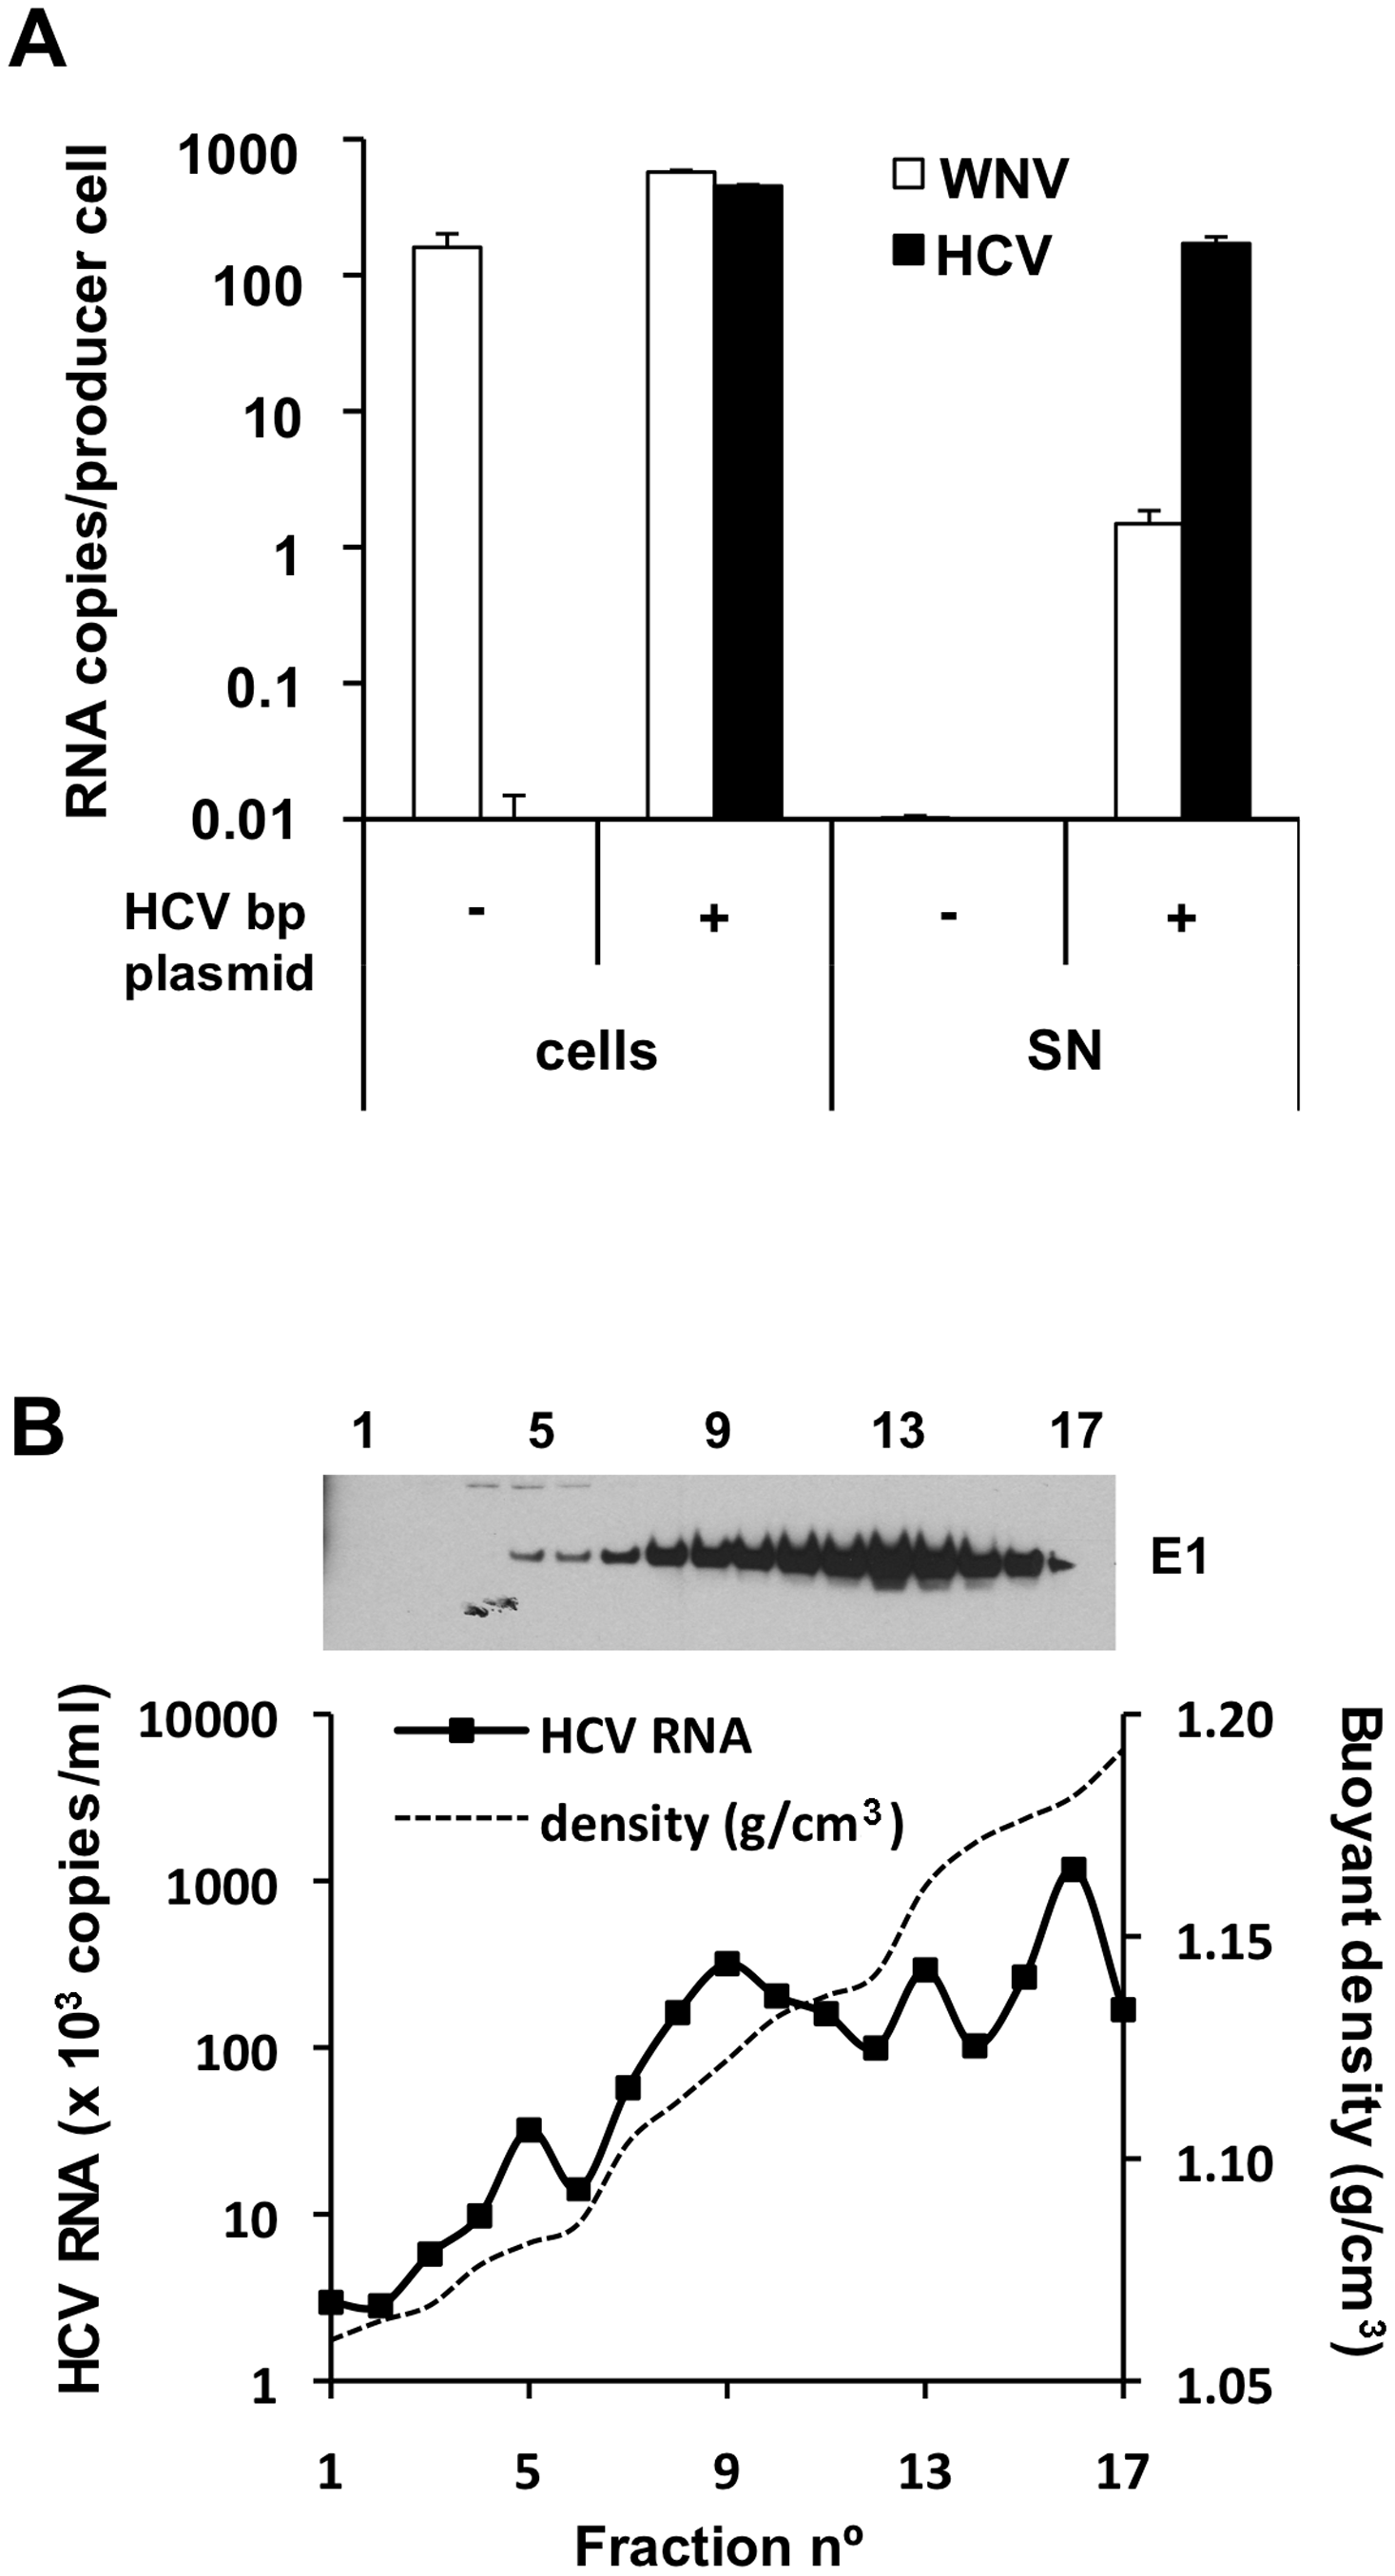 HCV RNA is preferentially associated with in HCV bicistronic particles released by BHK-WNV cells.